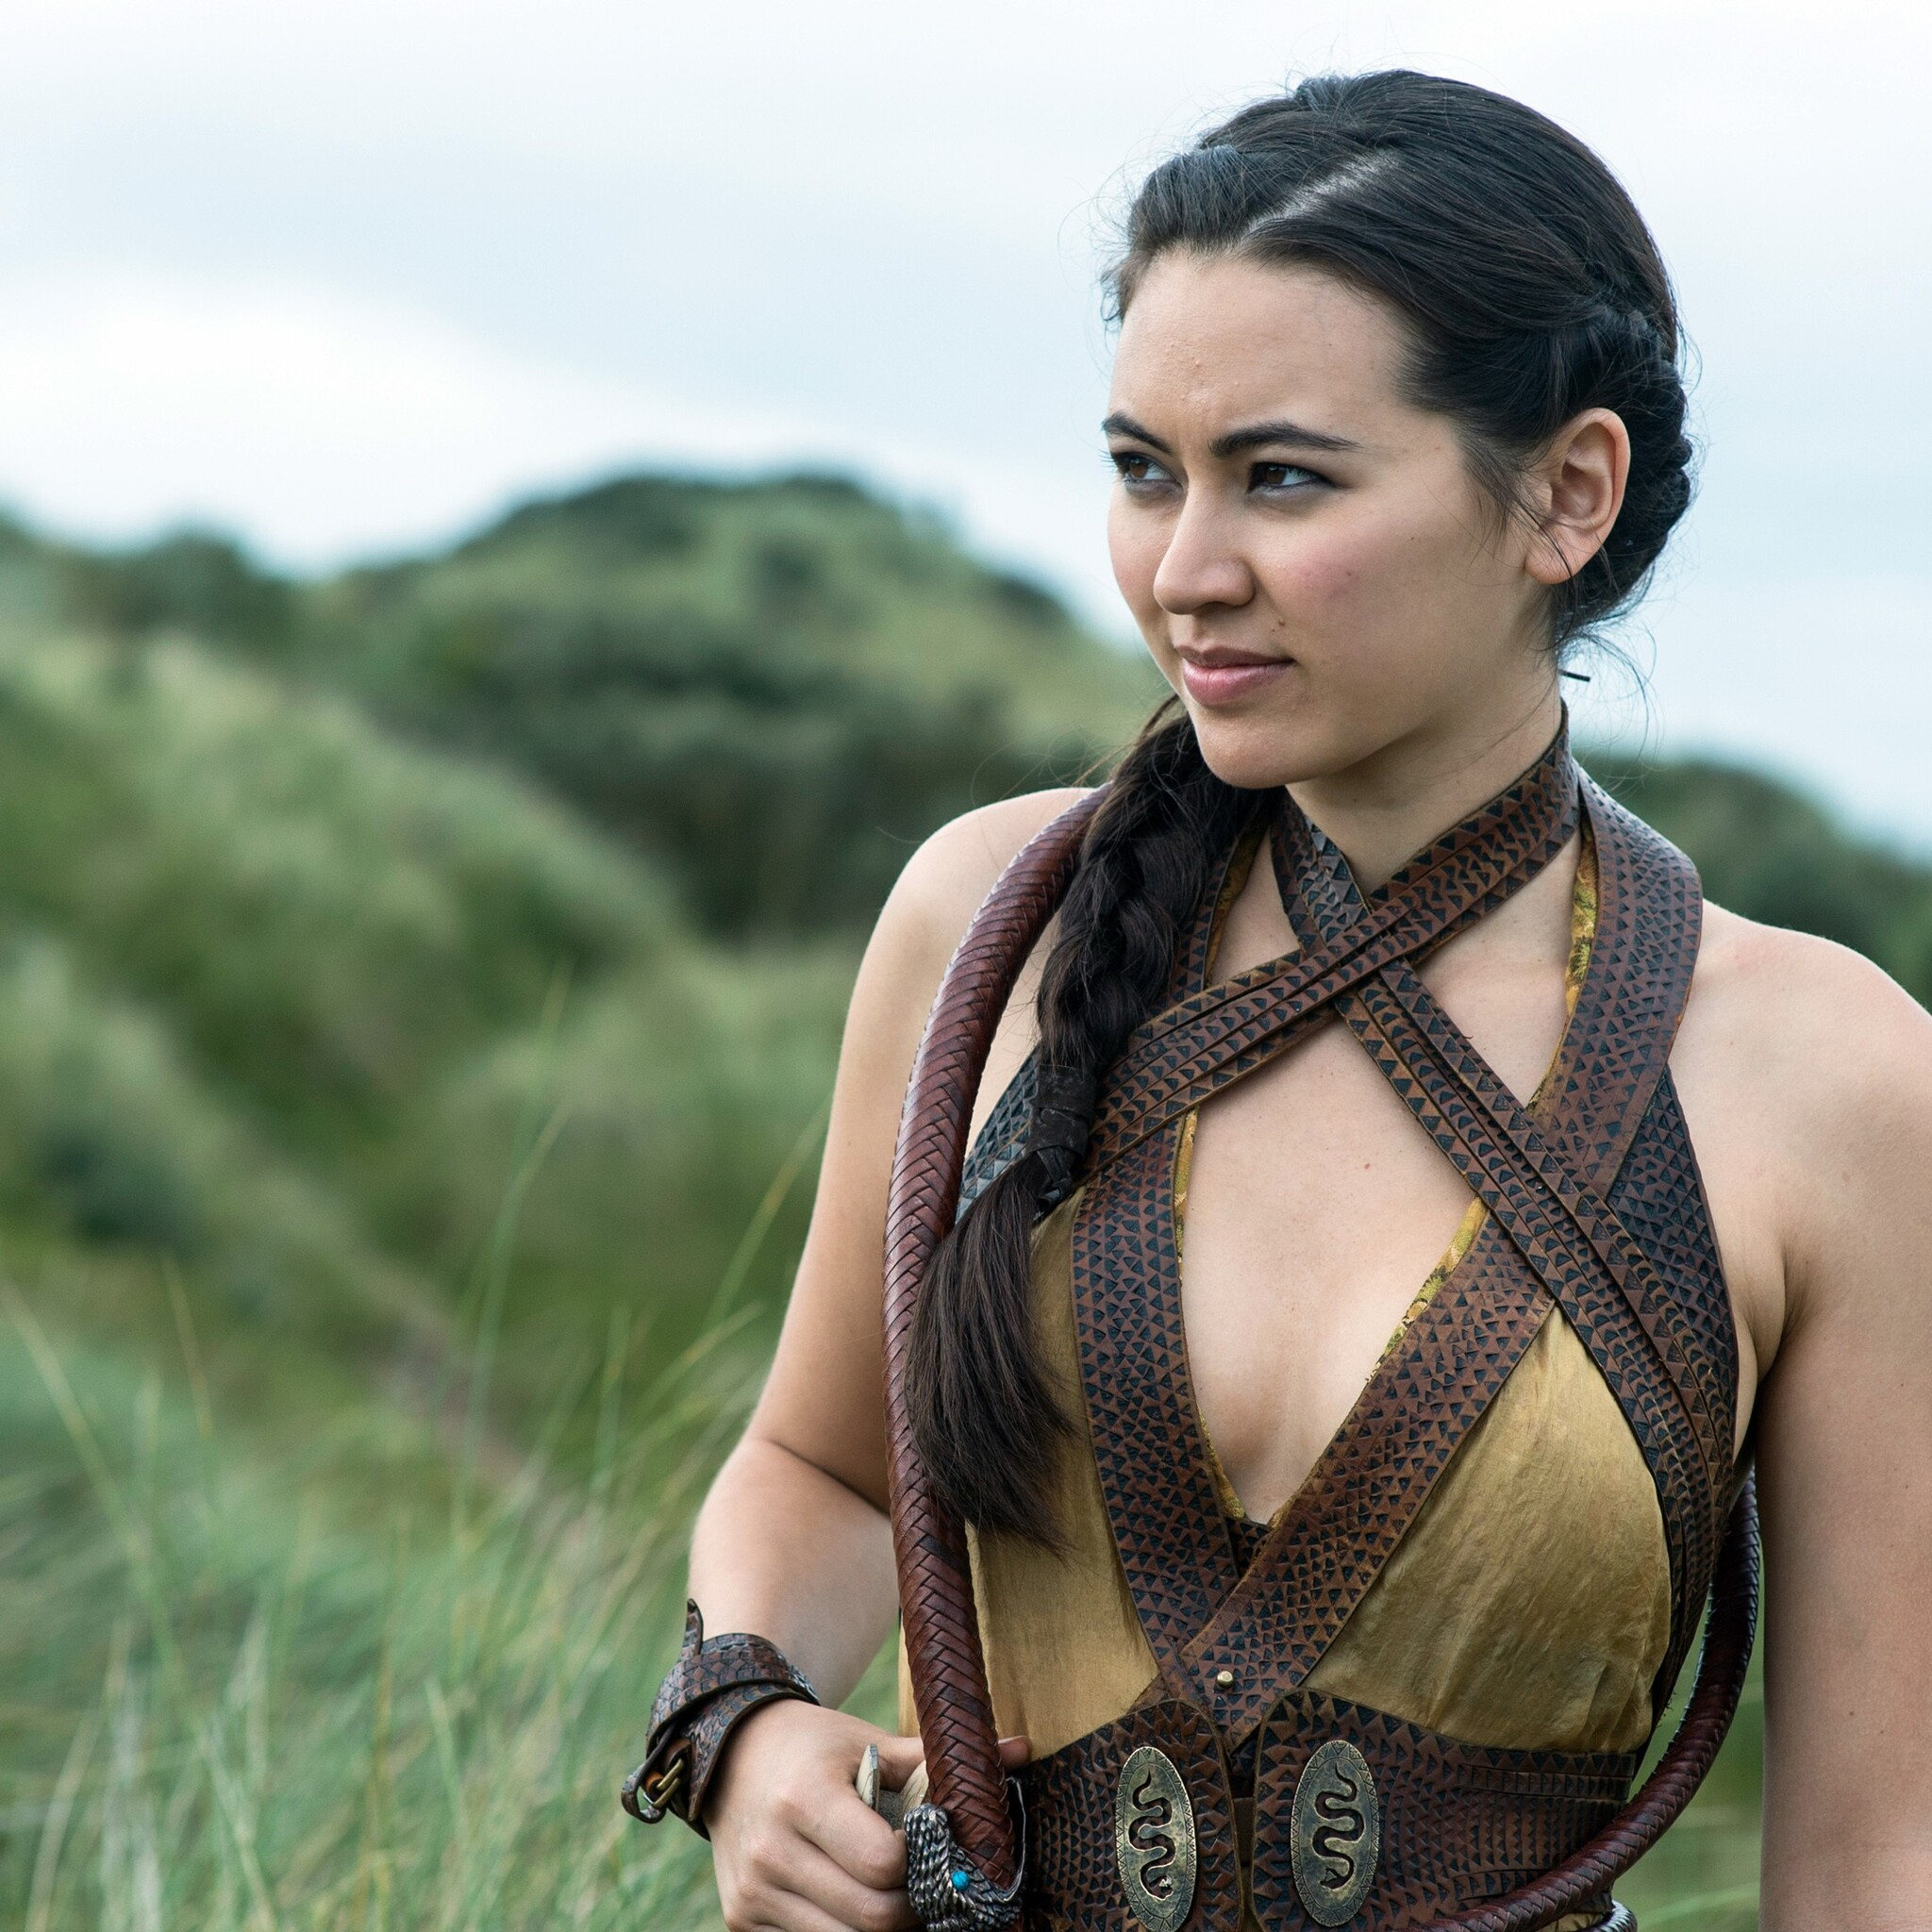 Crazy Anime Girl Wallpapers 2048x2048 Jessica Henwick Nymeria Sand Game Of Thrones